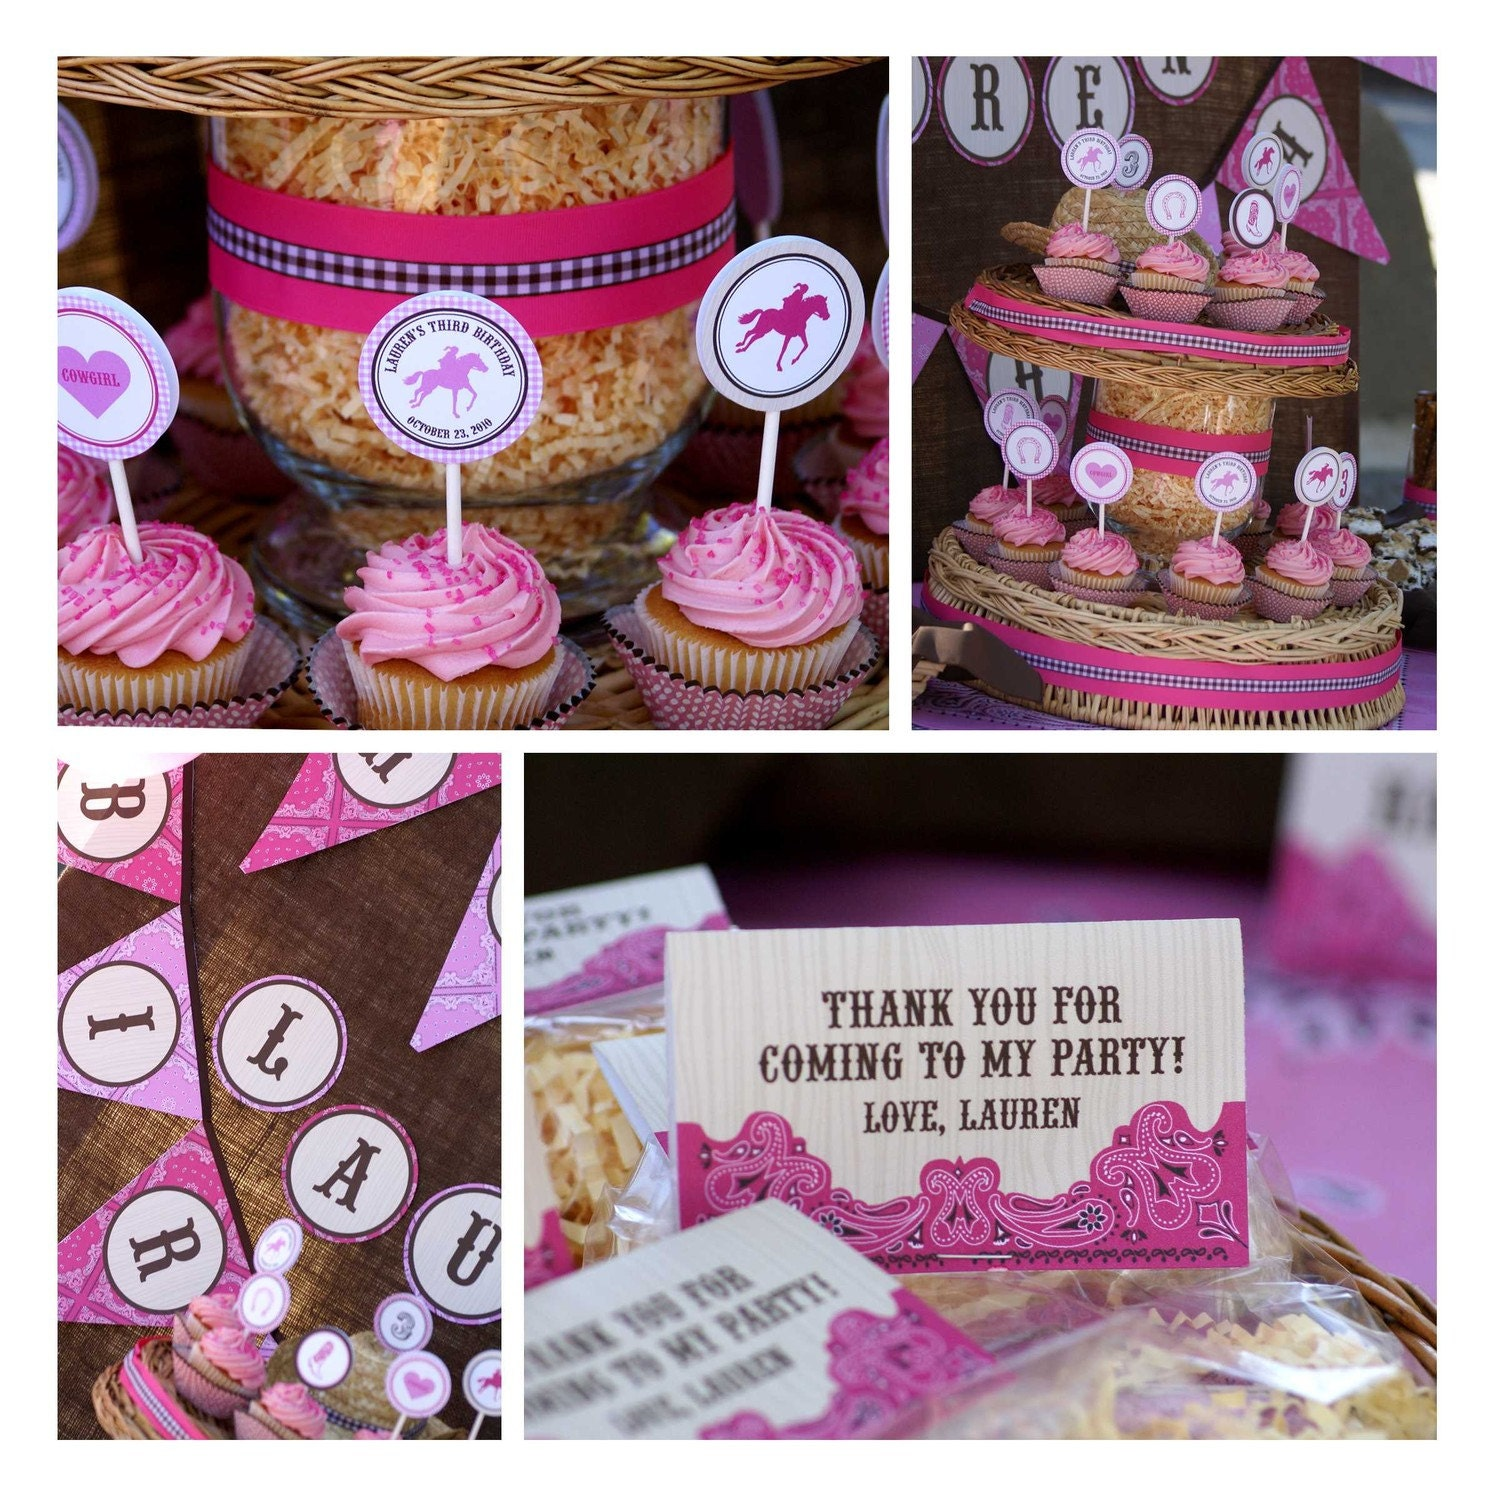 DIY Cowgirl Printable Design Accessories Collection -Personalized with your info - Food labels, cupcake toppers, favor hangtags and more